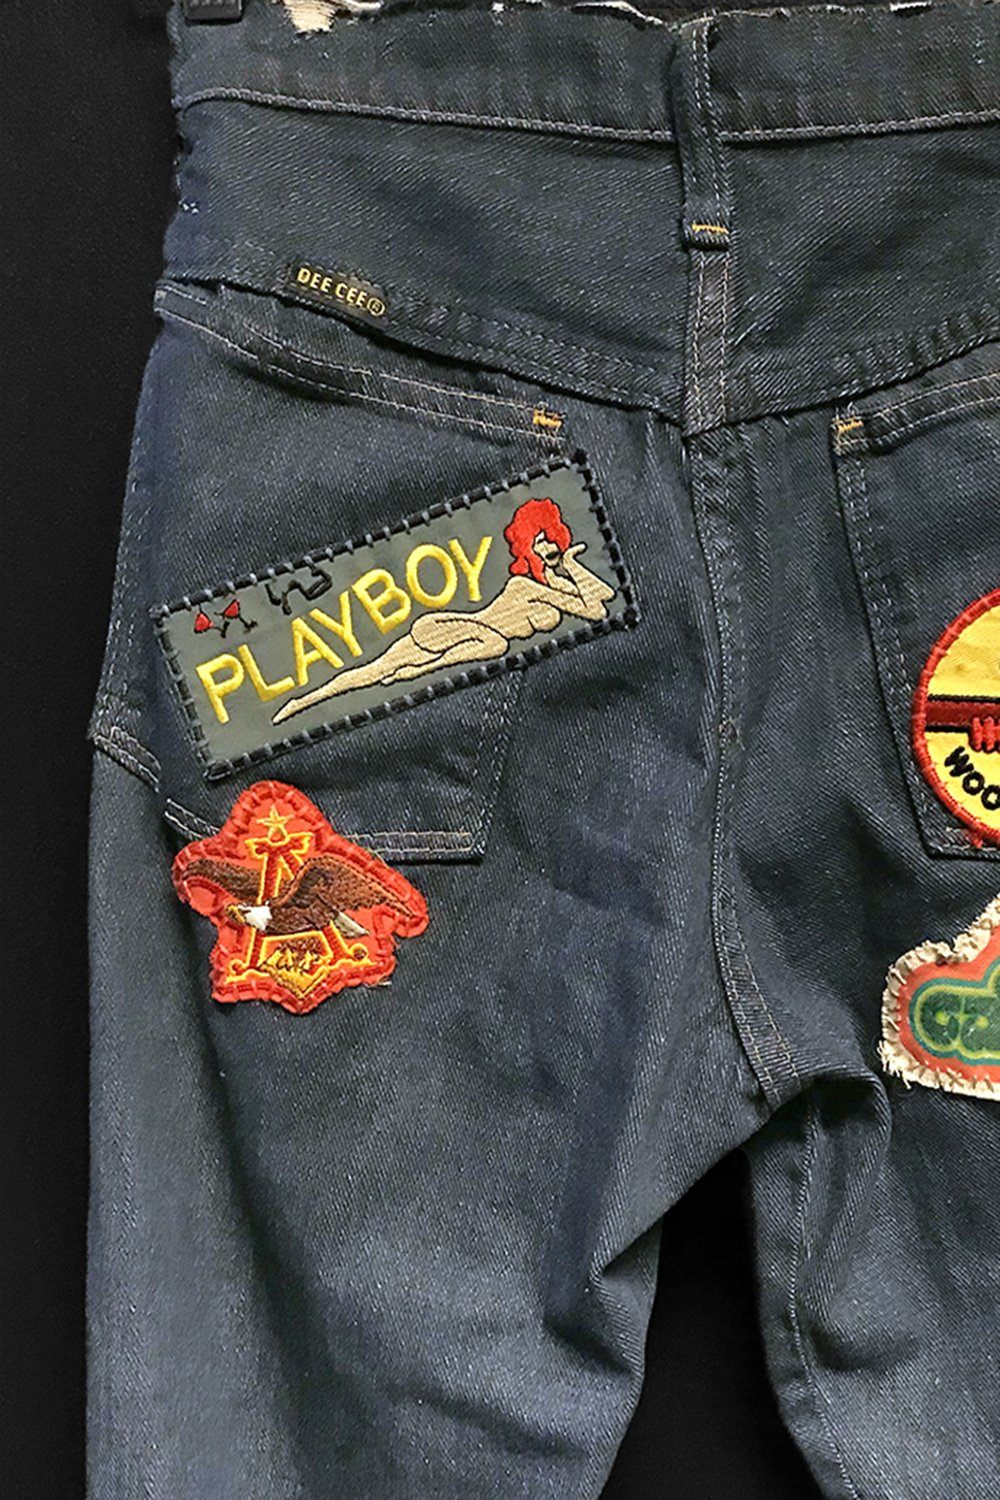 Vintage PLAYBOY Vietnam Liberty Cuff Patches *ALMOST GONE!*